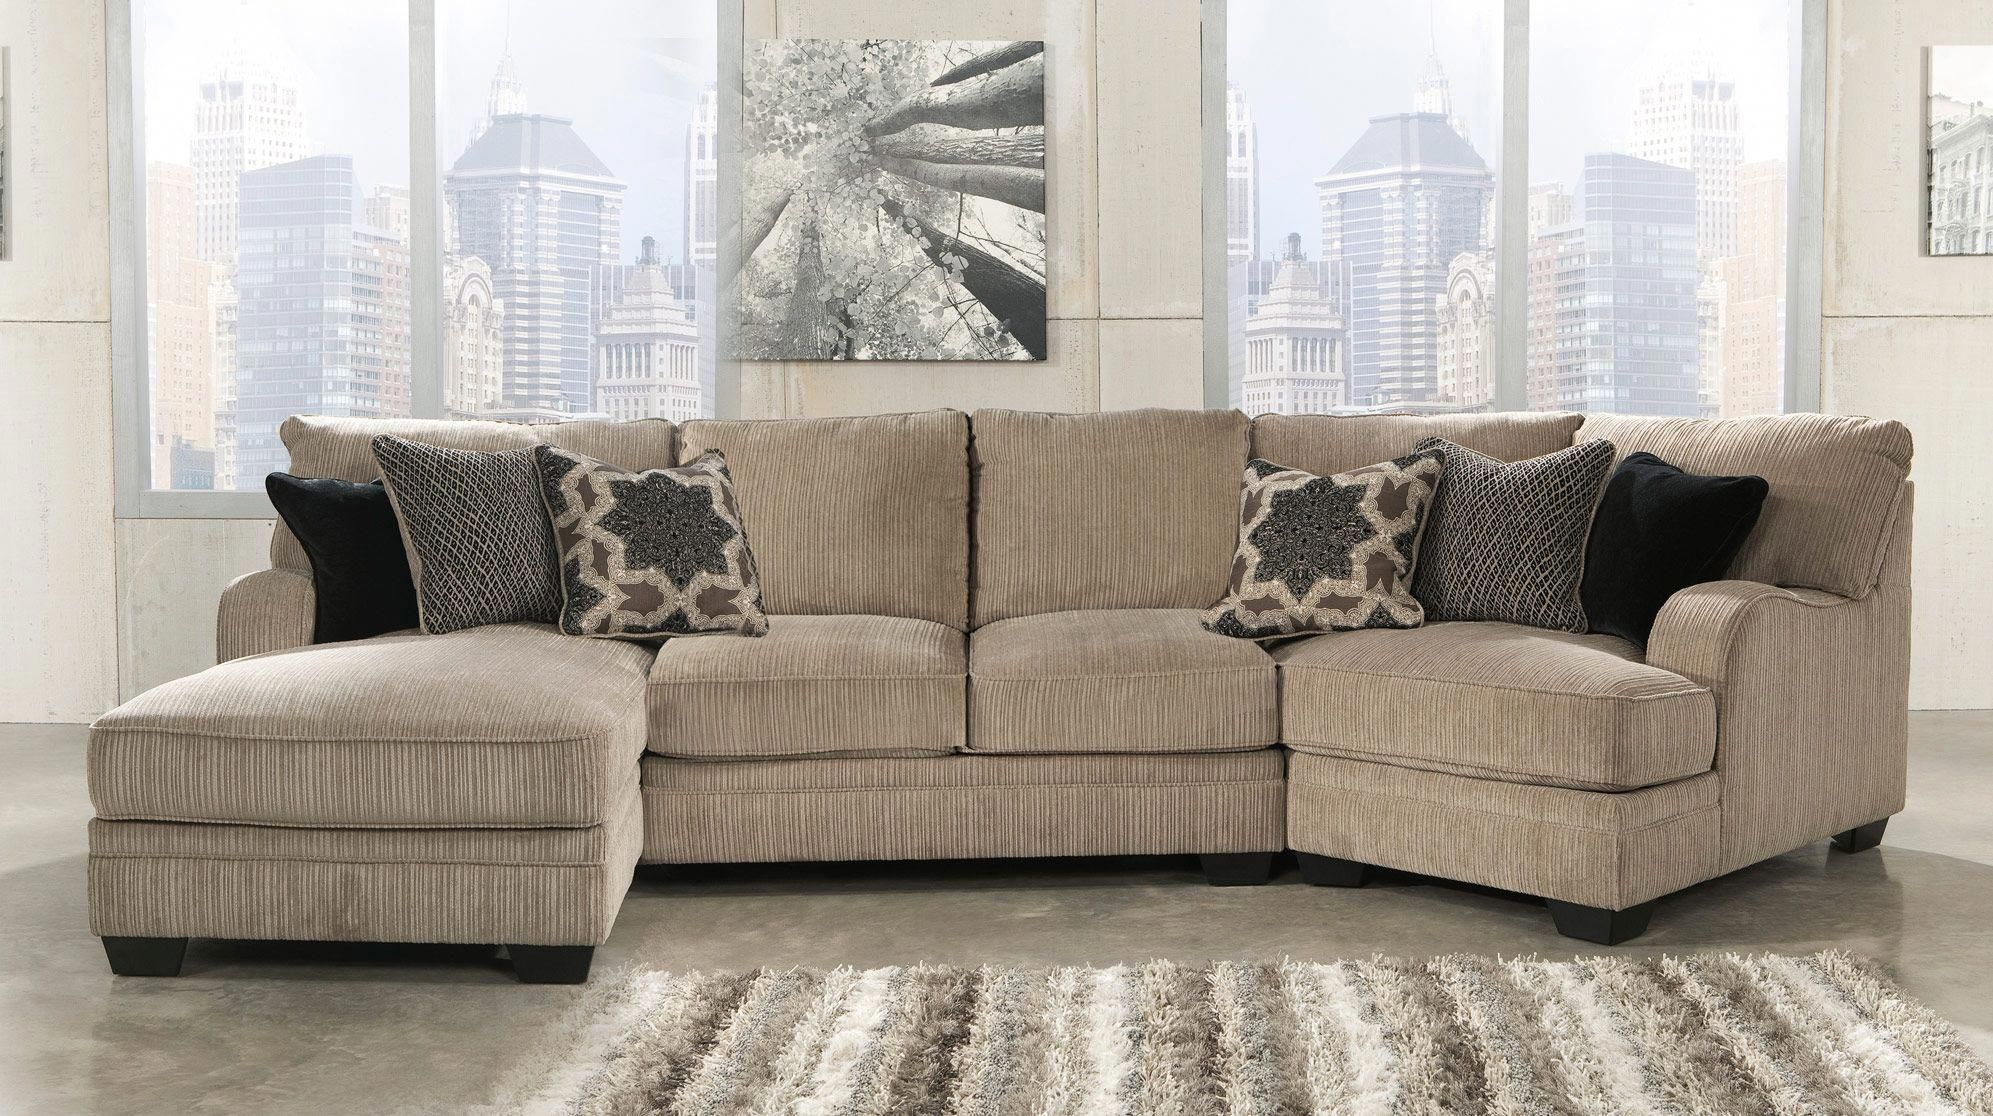 Katisha 30500 16 34 75 3 Piece Fabric Sectional Sofa With Left Chaise Armless Loveseat Ri Sectional Sofa With Chaise Fabric Sectional Sofas Livingroom Layout